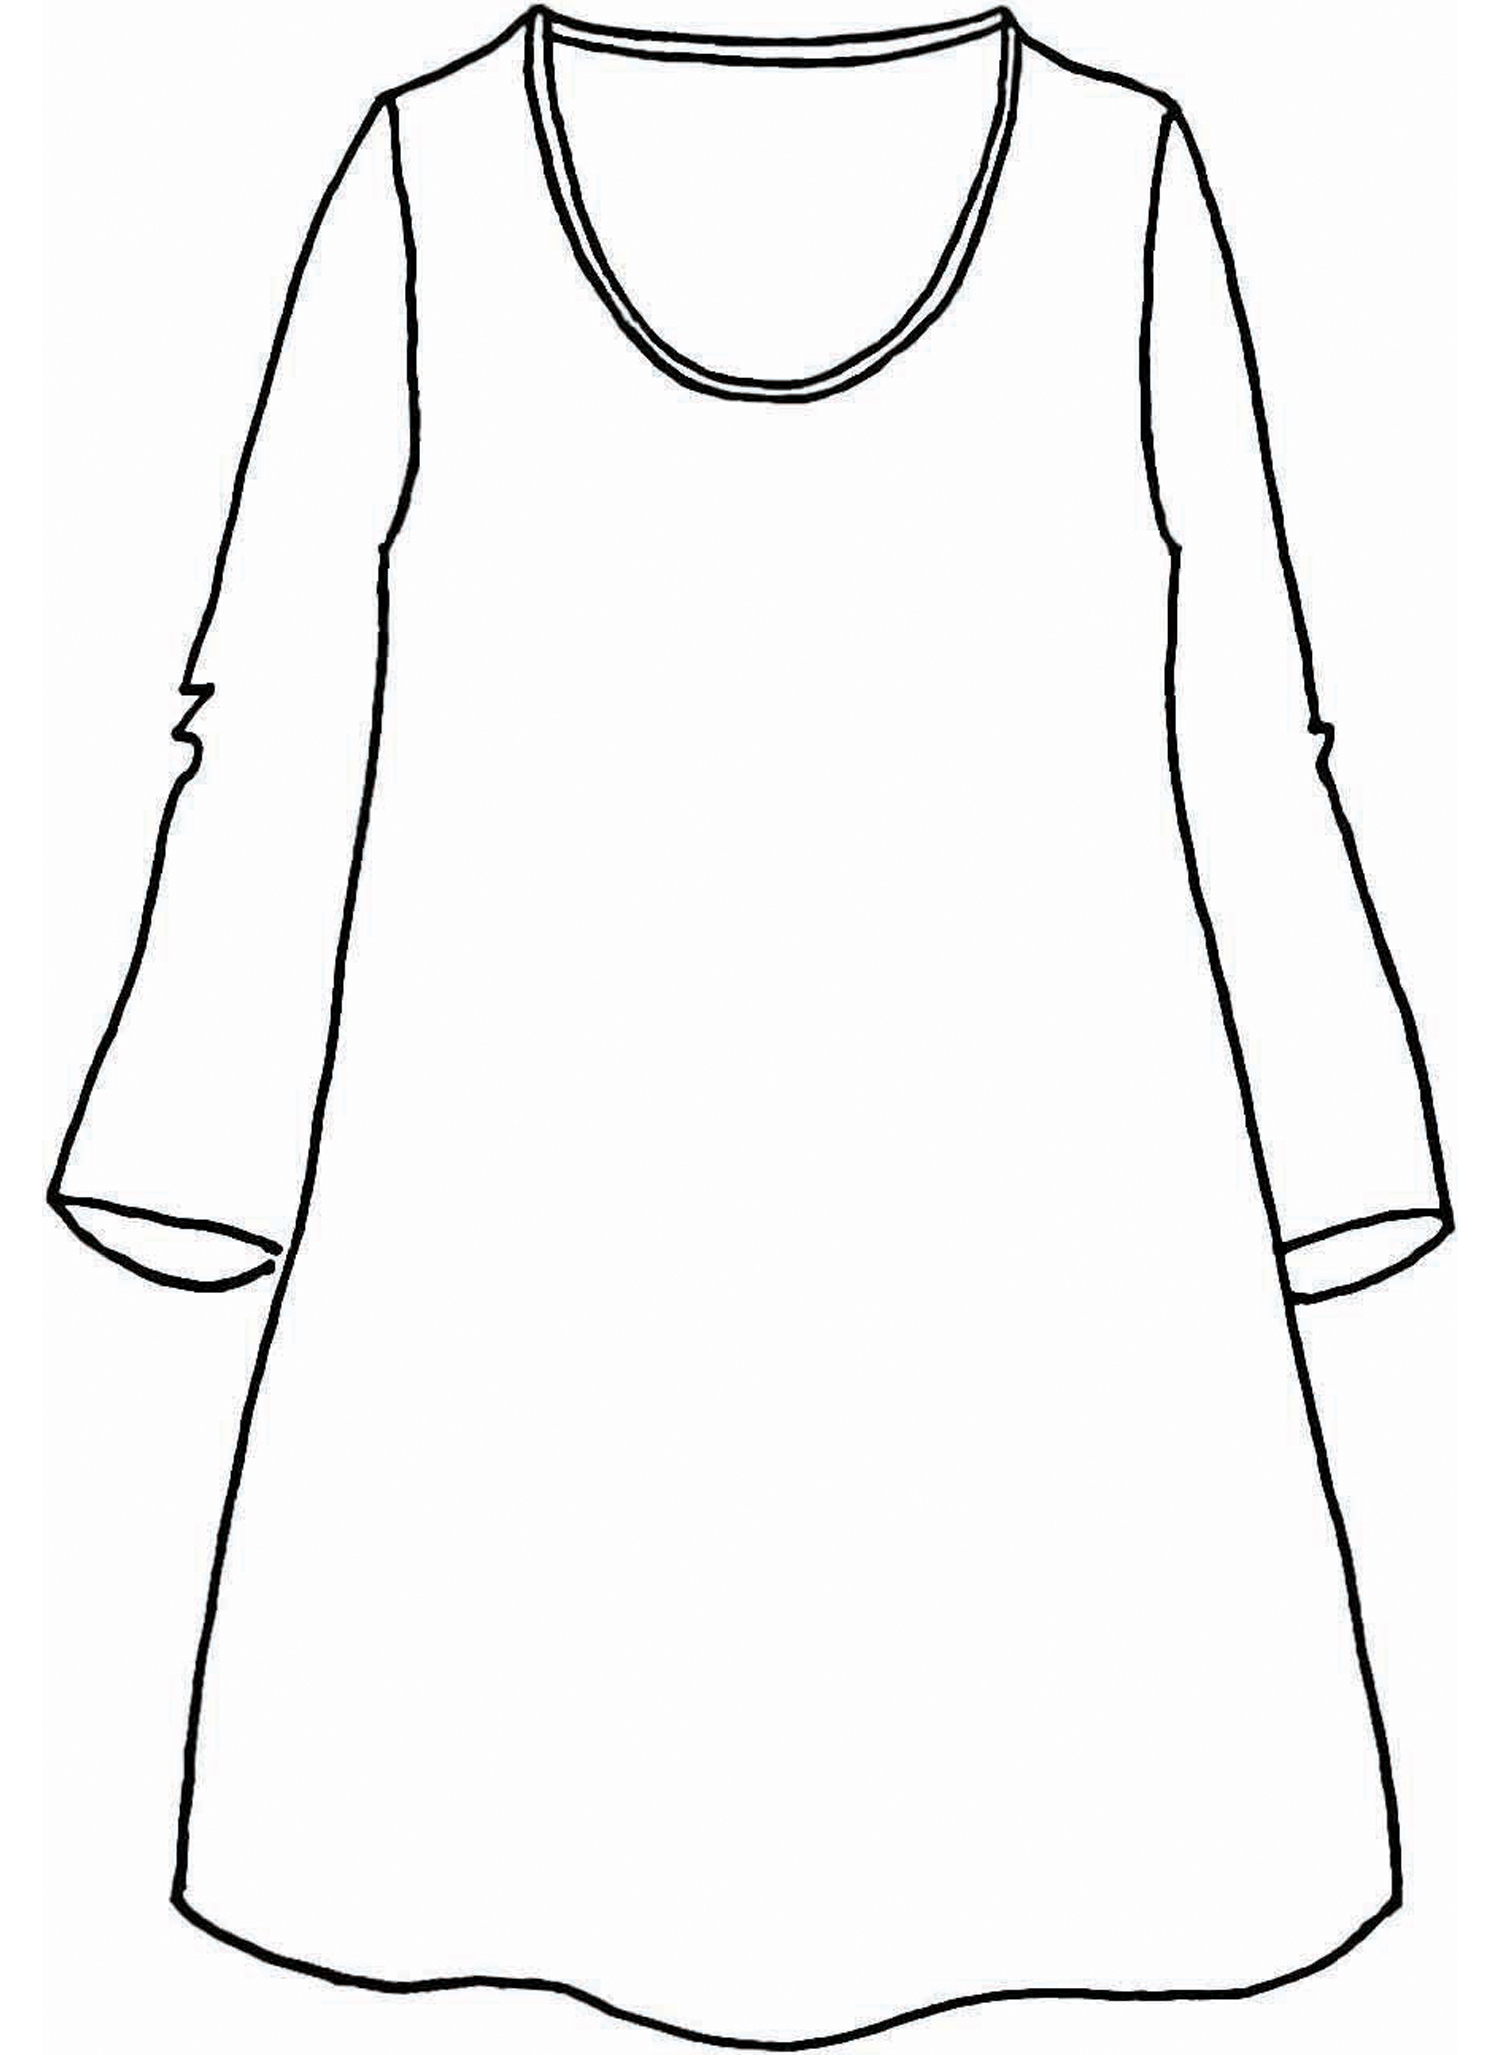 Effortless Tunic sketch image